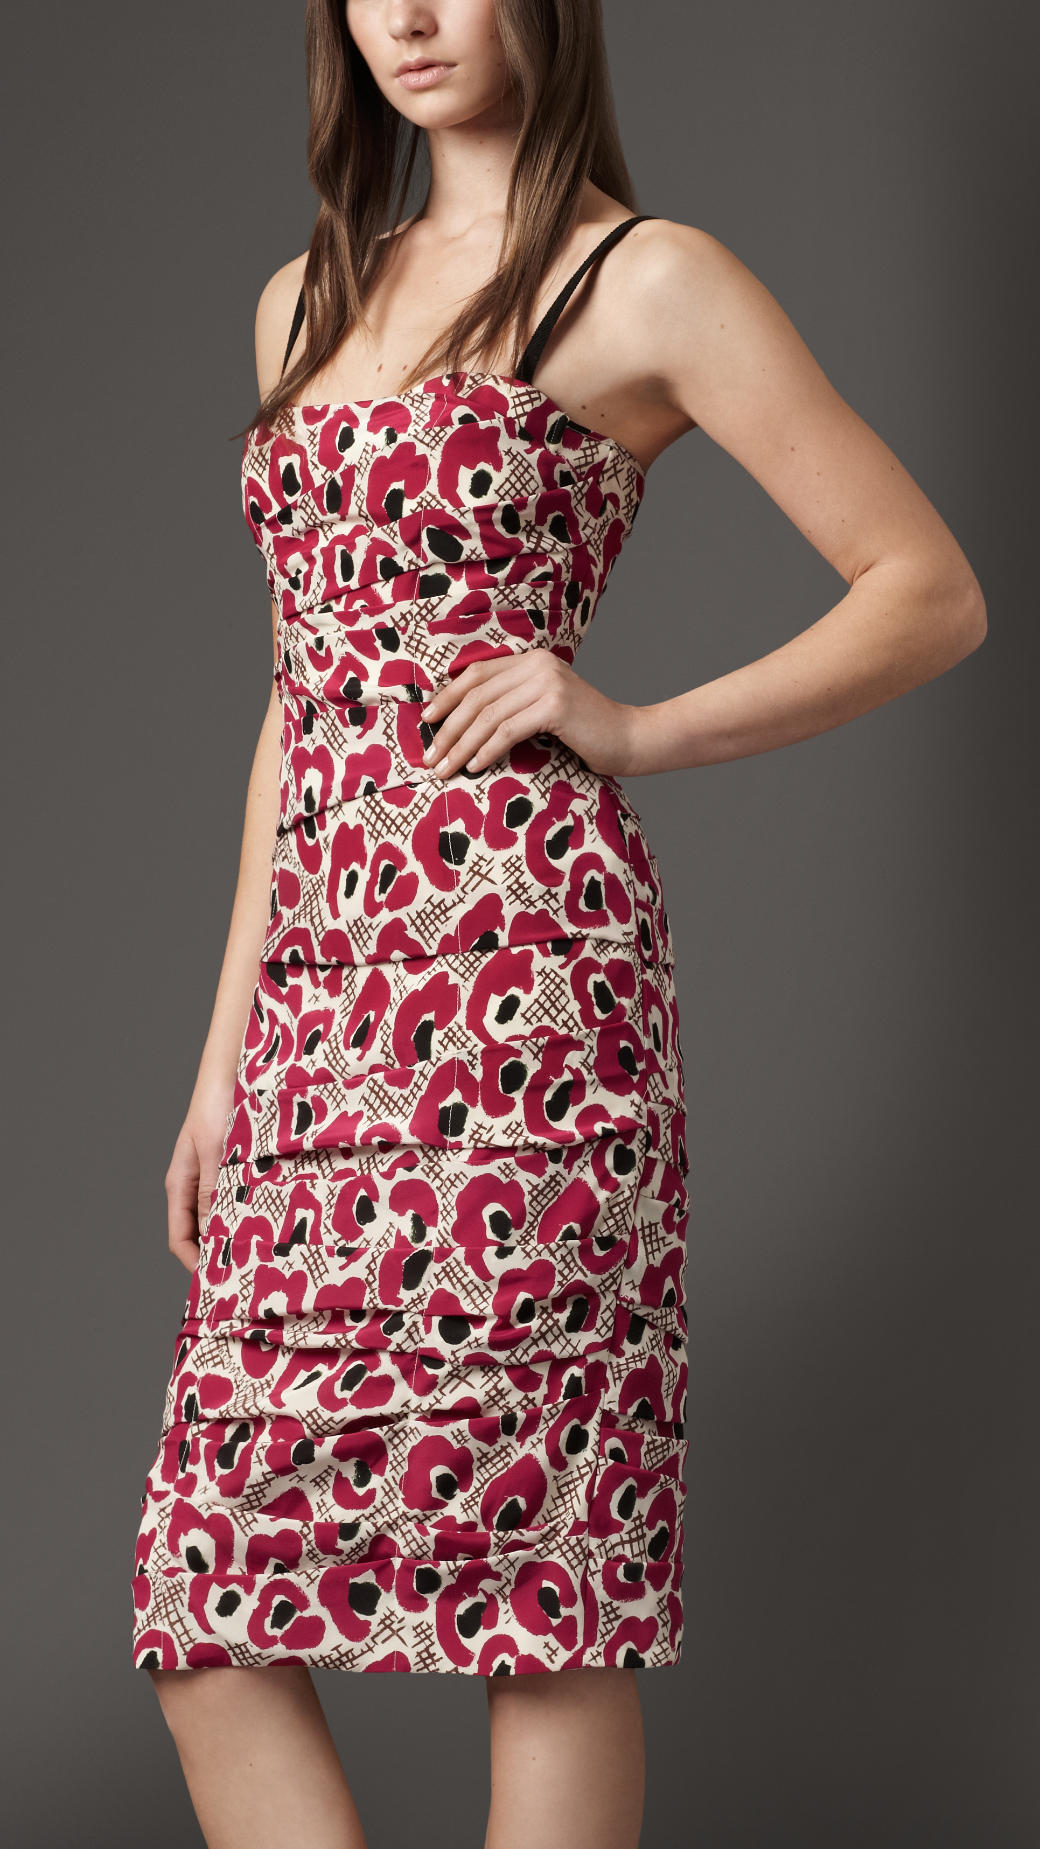 2a4d932006ab8 Lyst - Burberry Animal Floral Print Silk Dress in Red